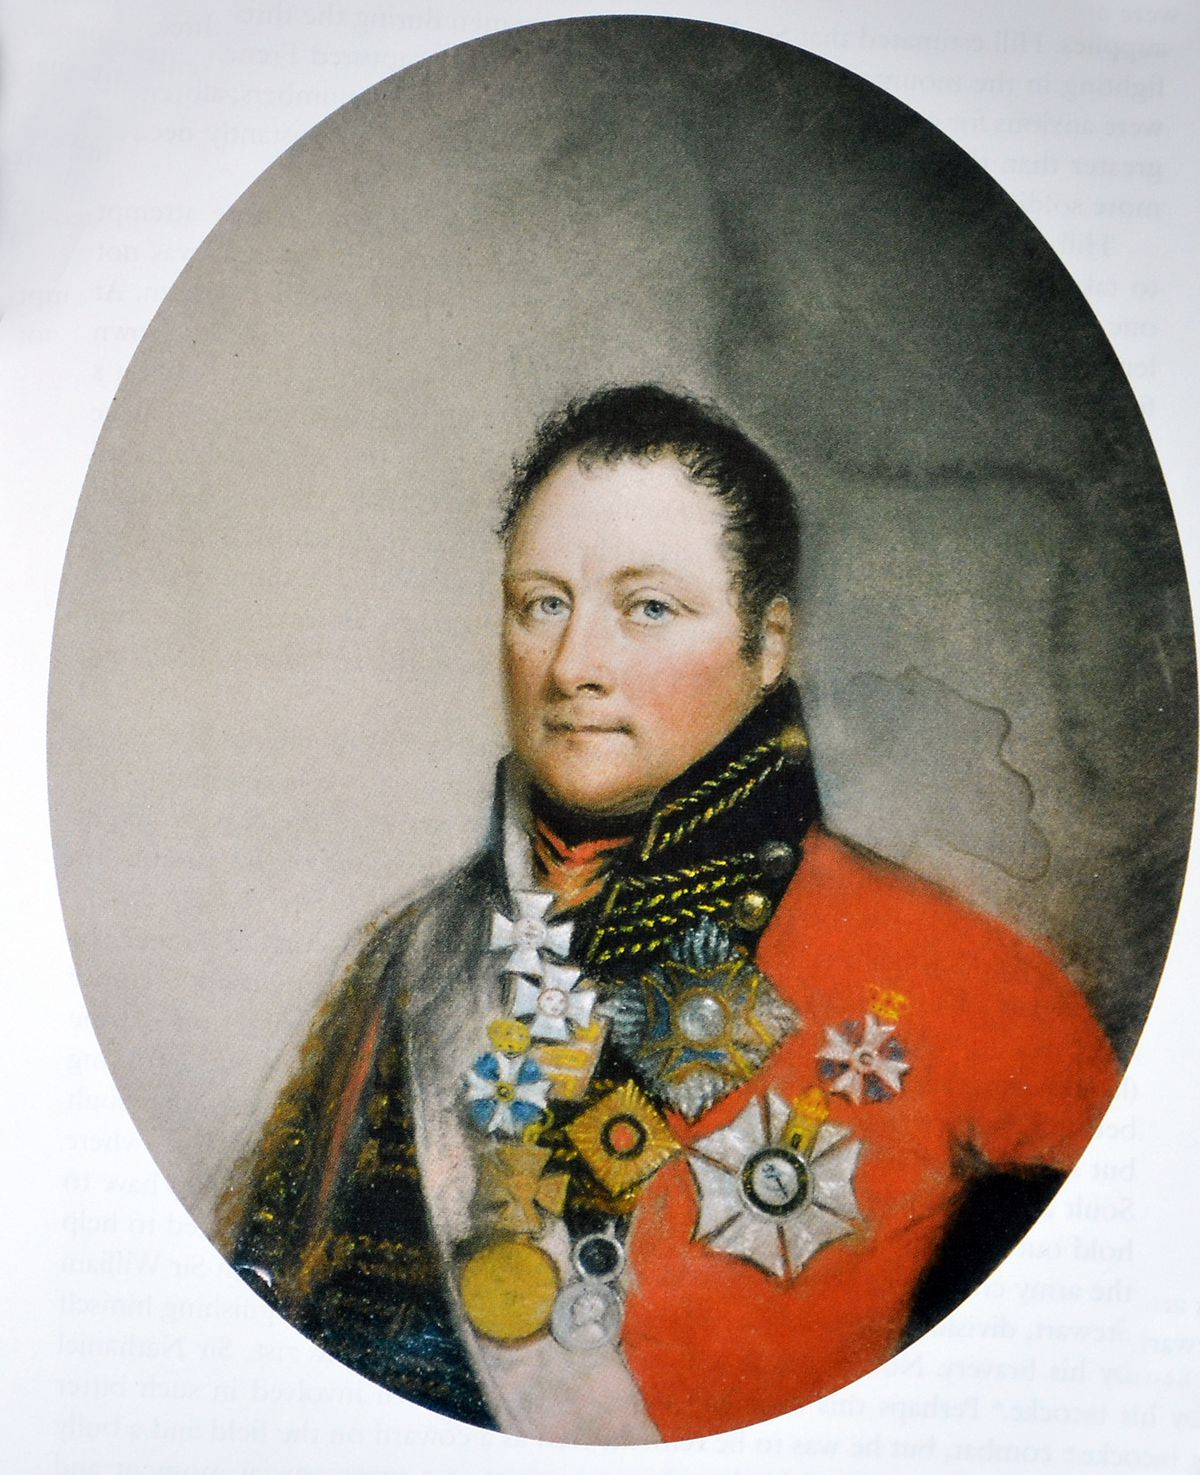 Lord Hill was Shropshire's military hero of the Napoleonic Wars.